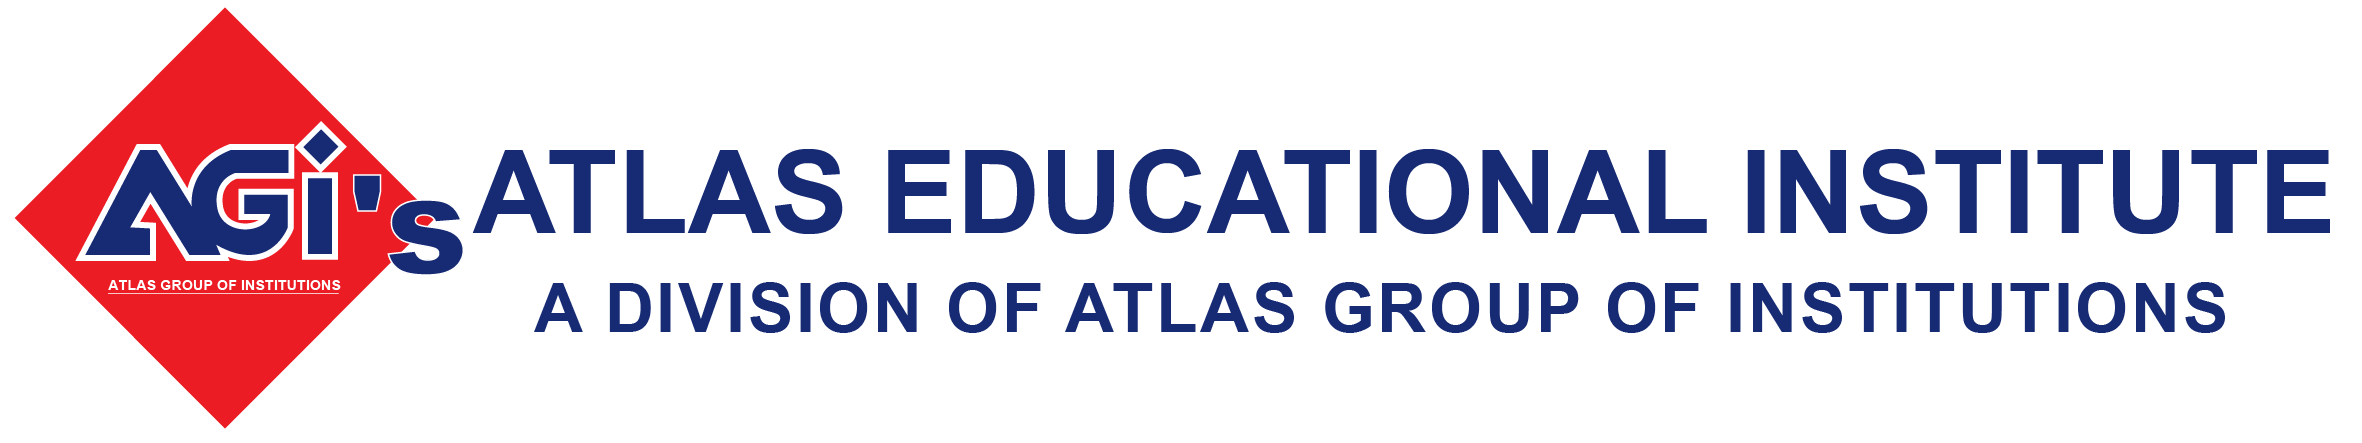 Atlas Educational Institute